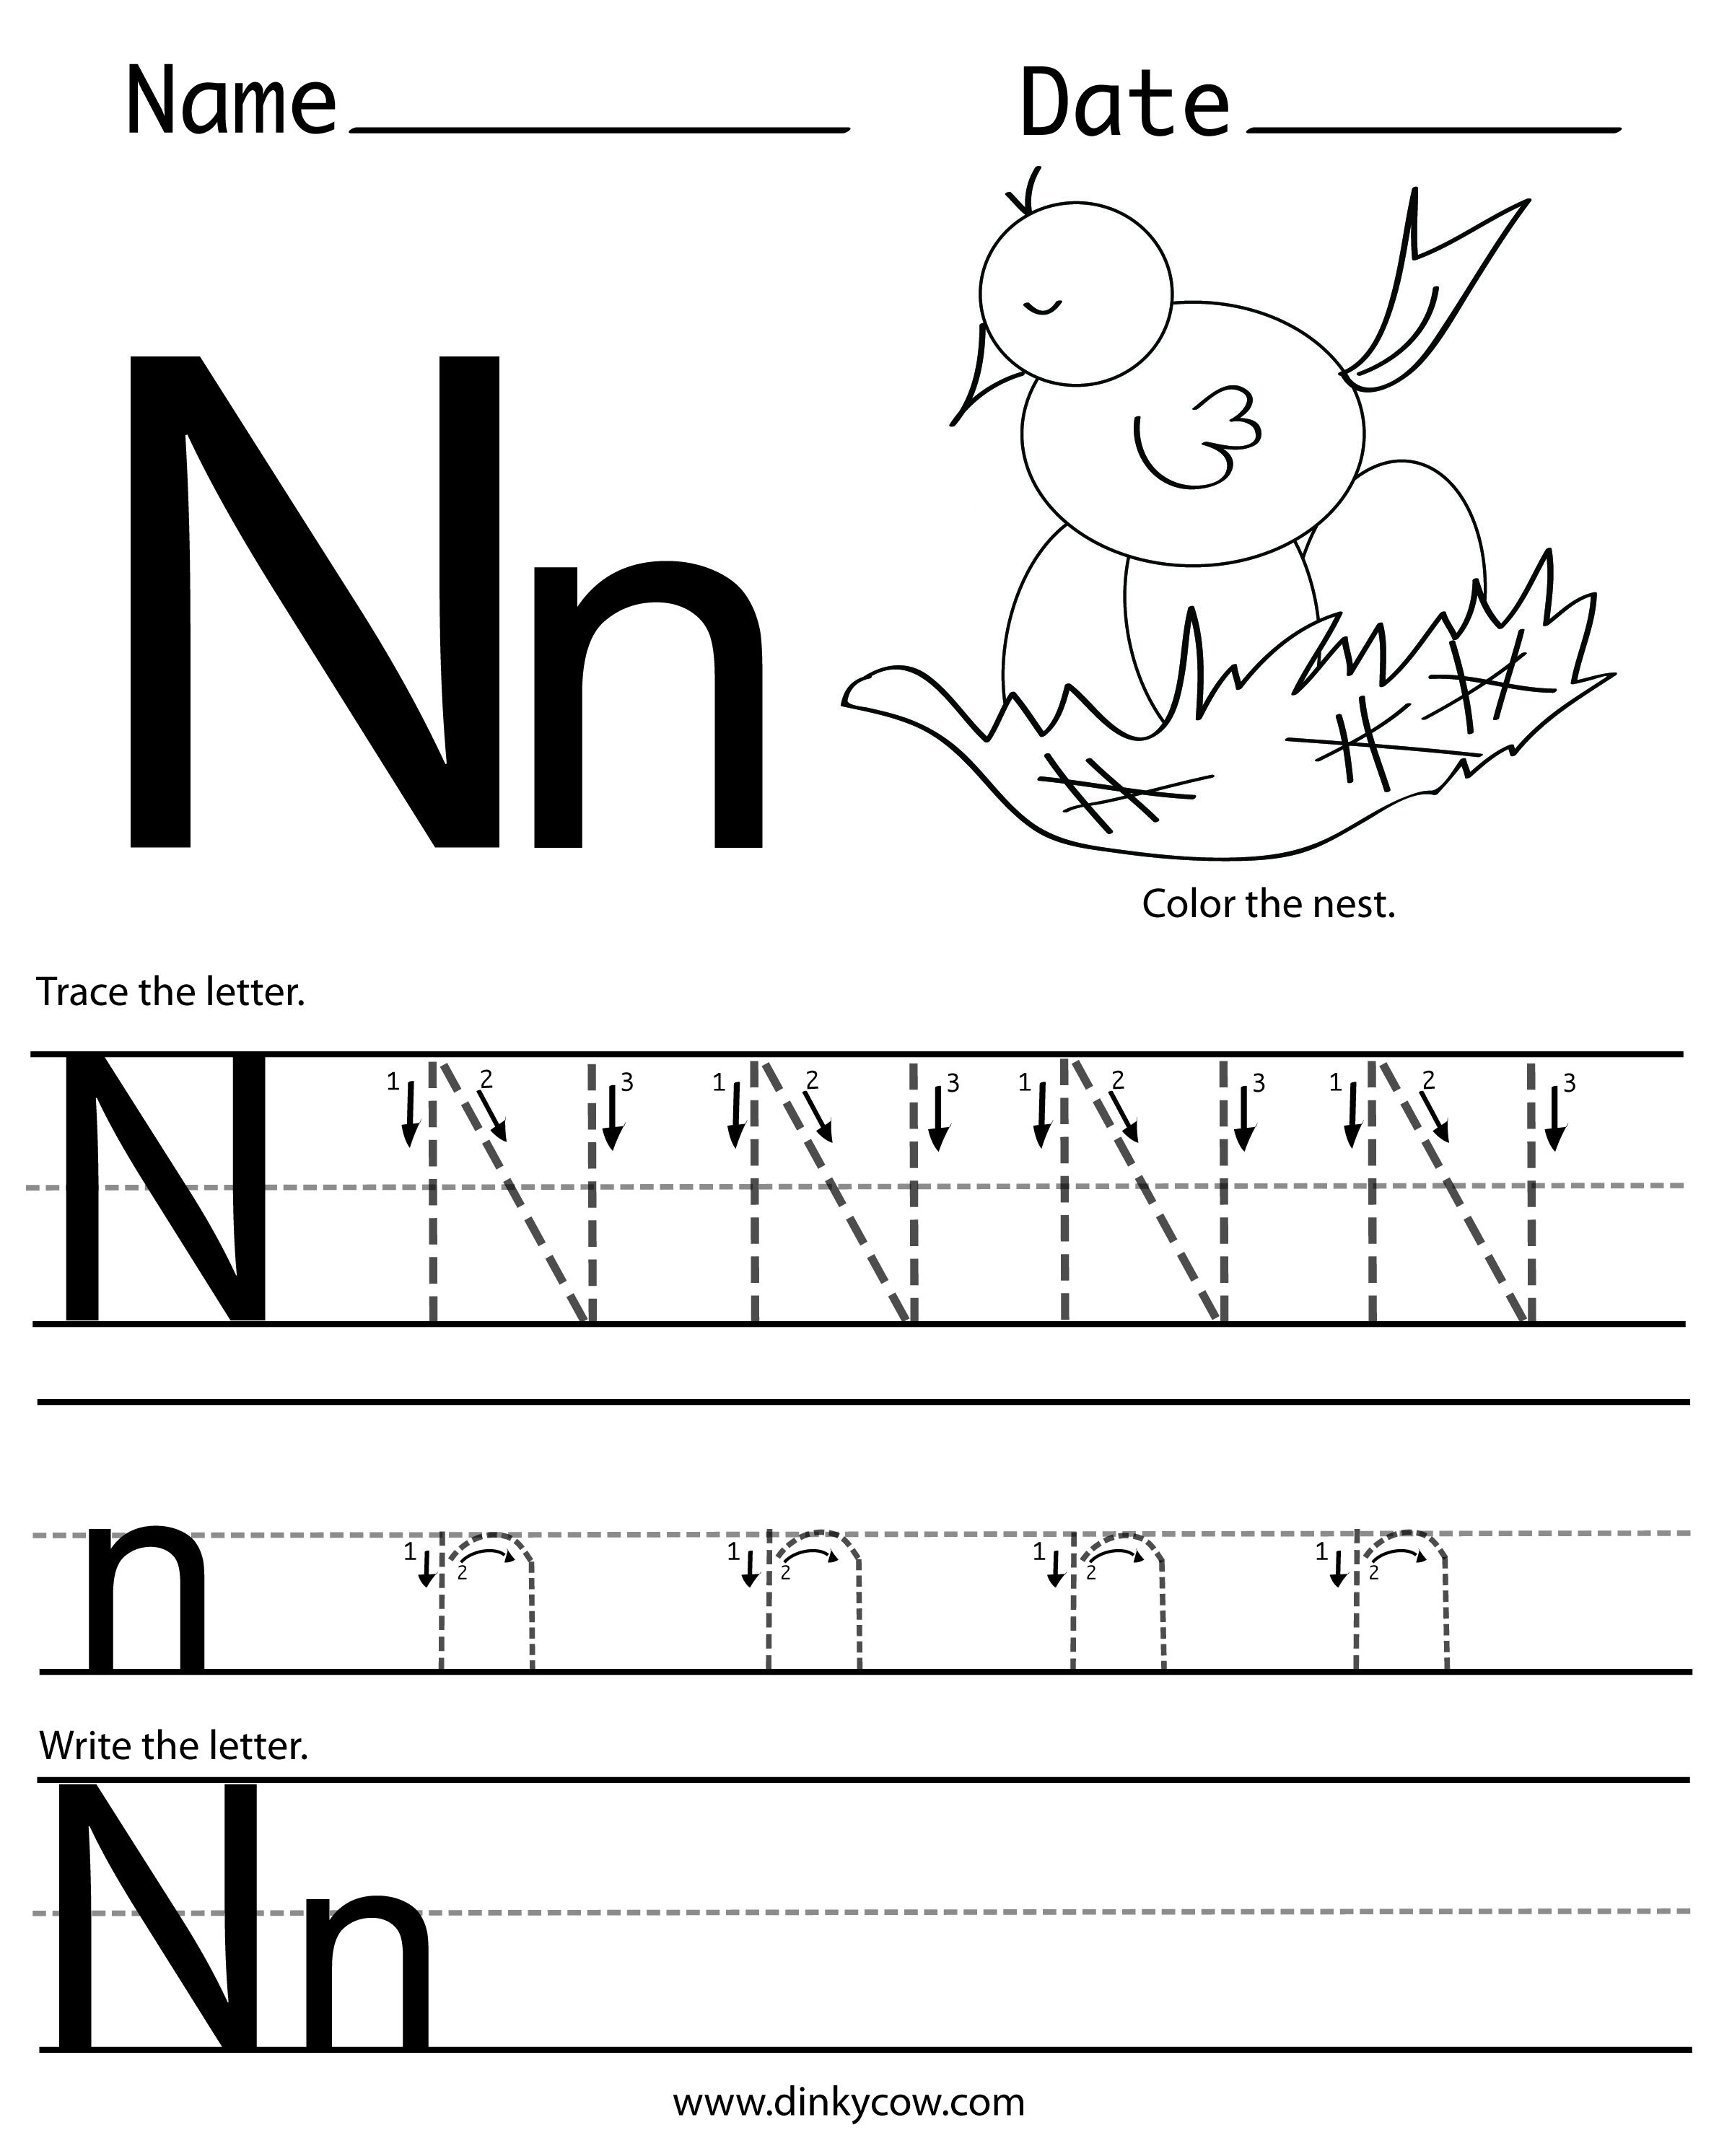 n-free-handwriting-worksheet-print.jpg 2,4002,988 pixels